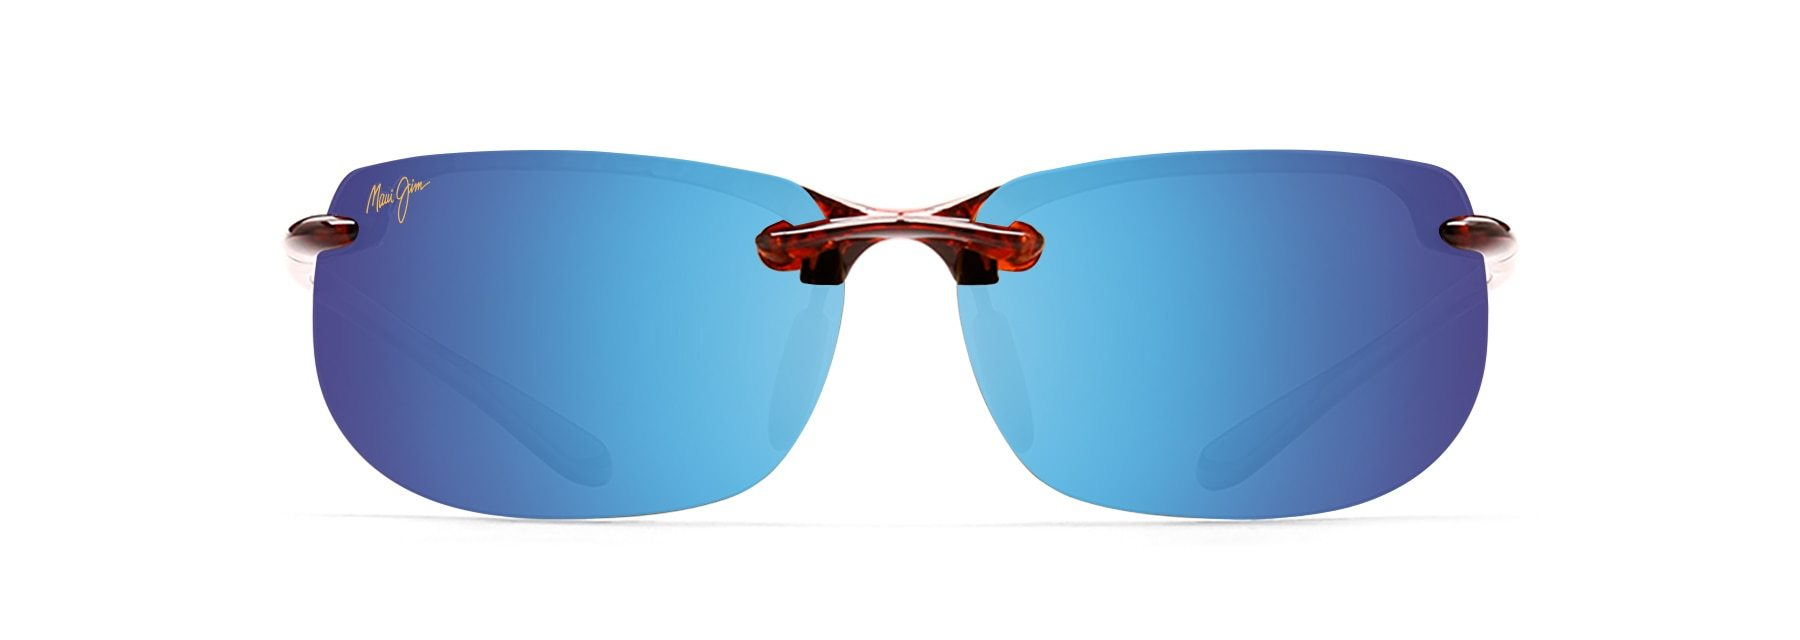 MyMaui Banyans MM412-007 Sunglasses